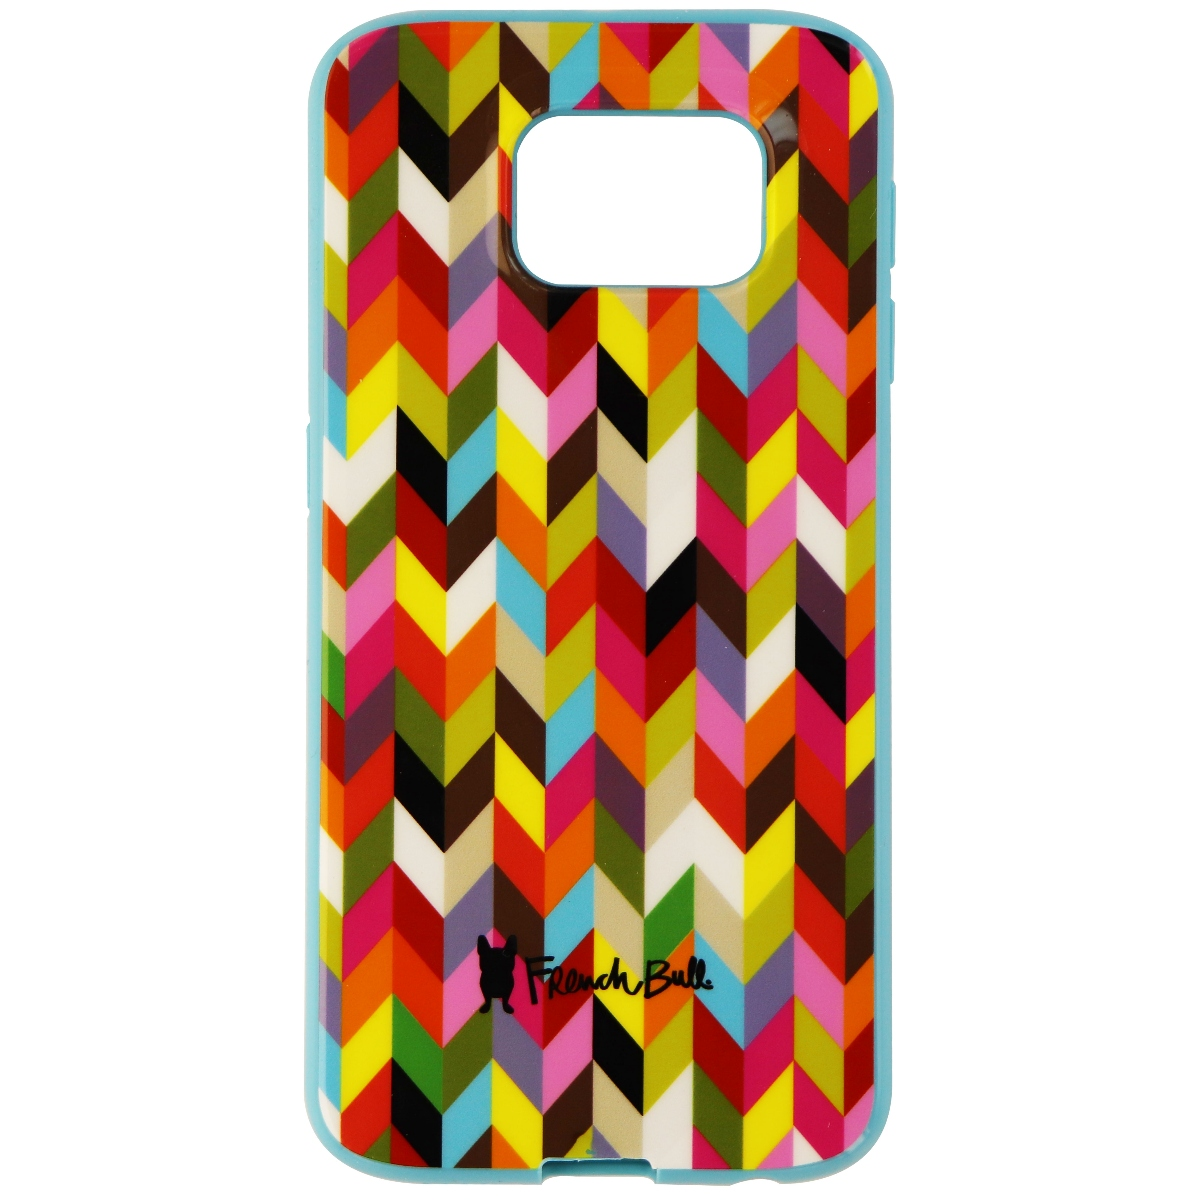 French Bull Soft Protective Gel Case for Samsung Galaxy S6 - Multi-Color / Blue